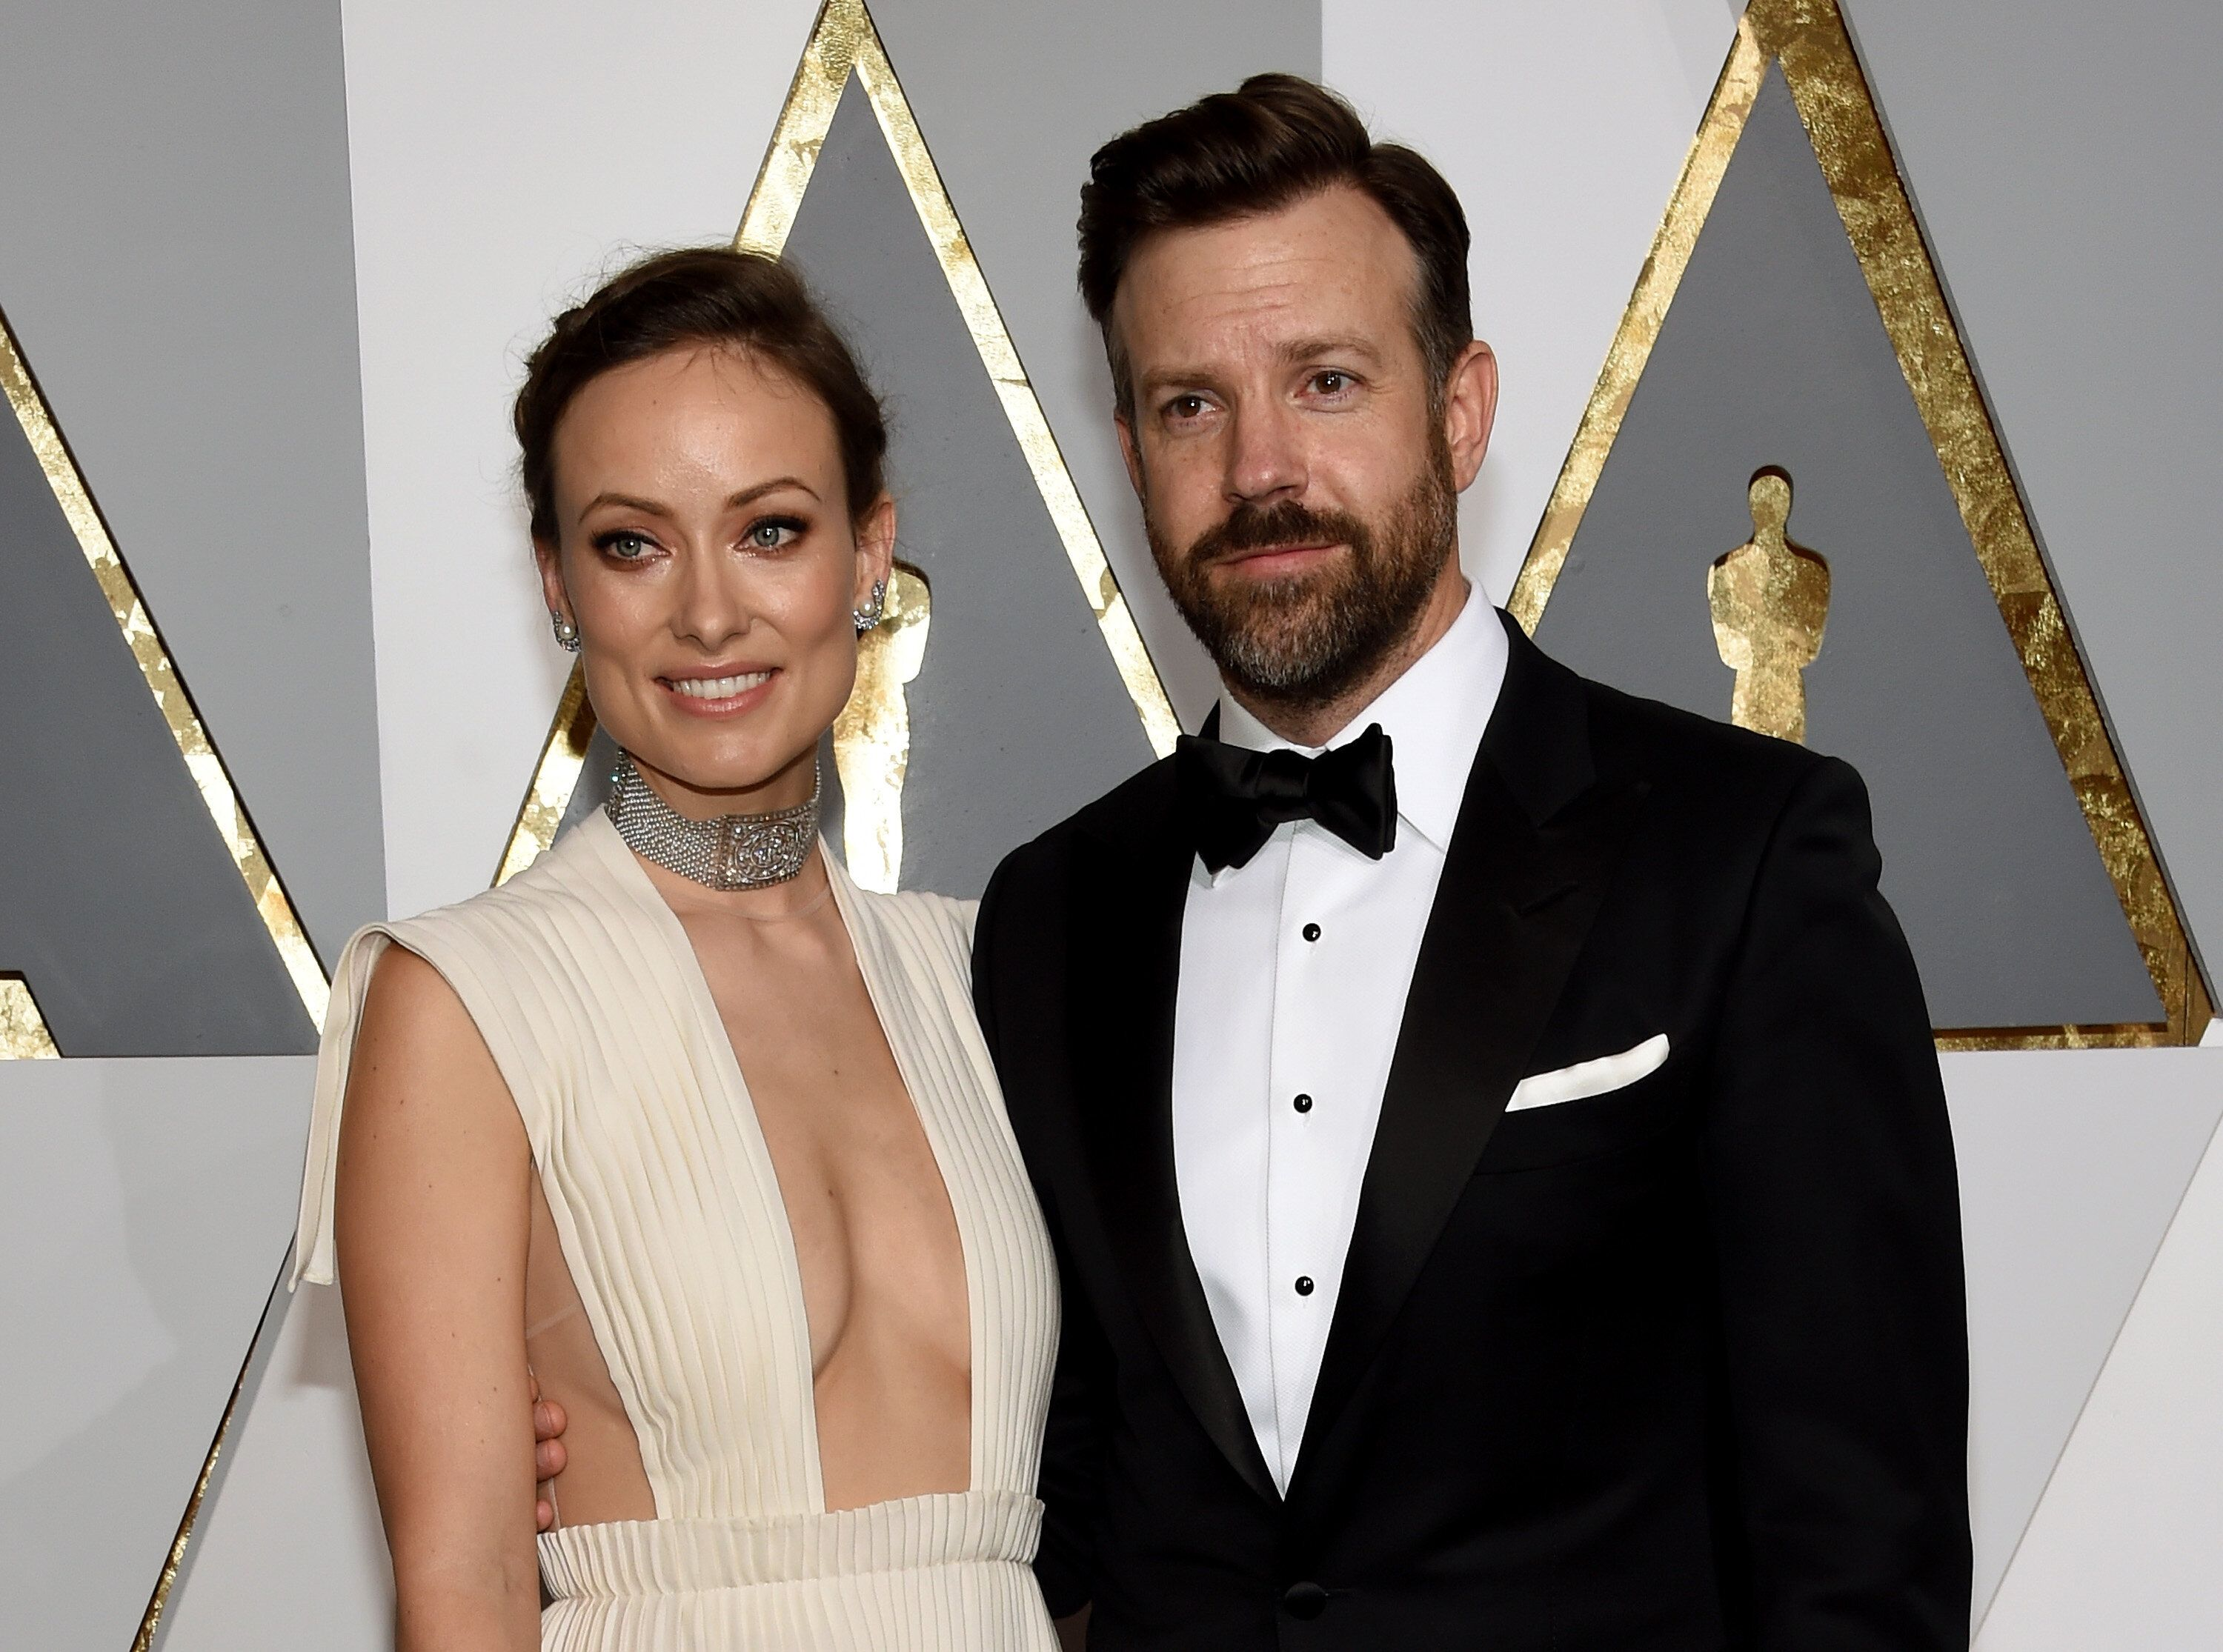 Olivia Wilde and Jason Sudeikis are calling it quits after nine years together.